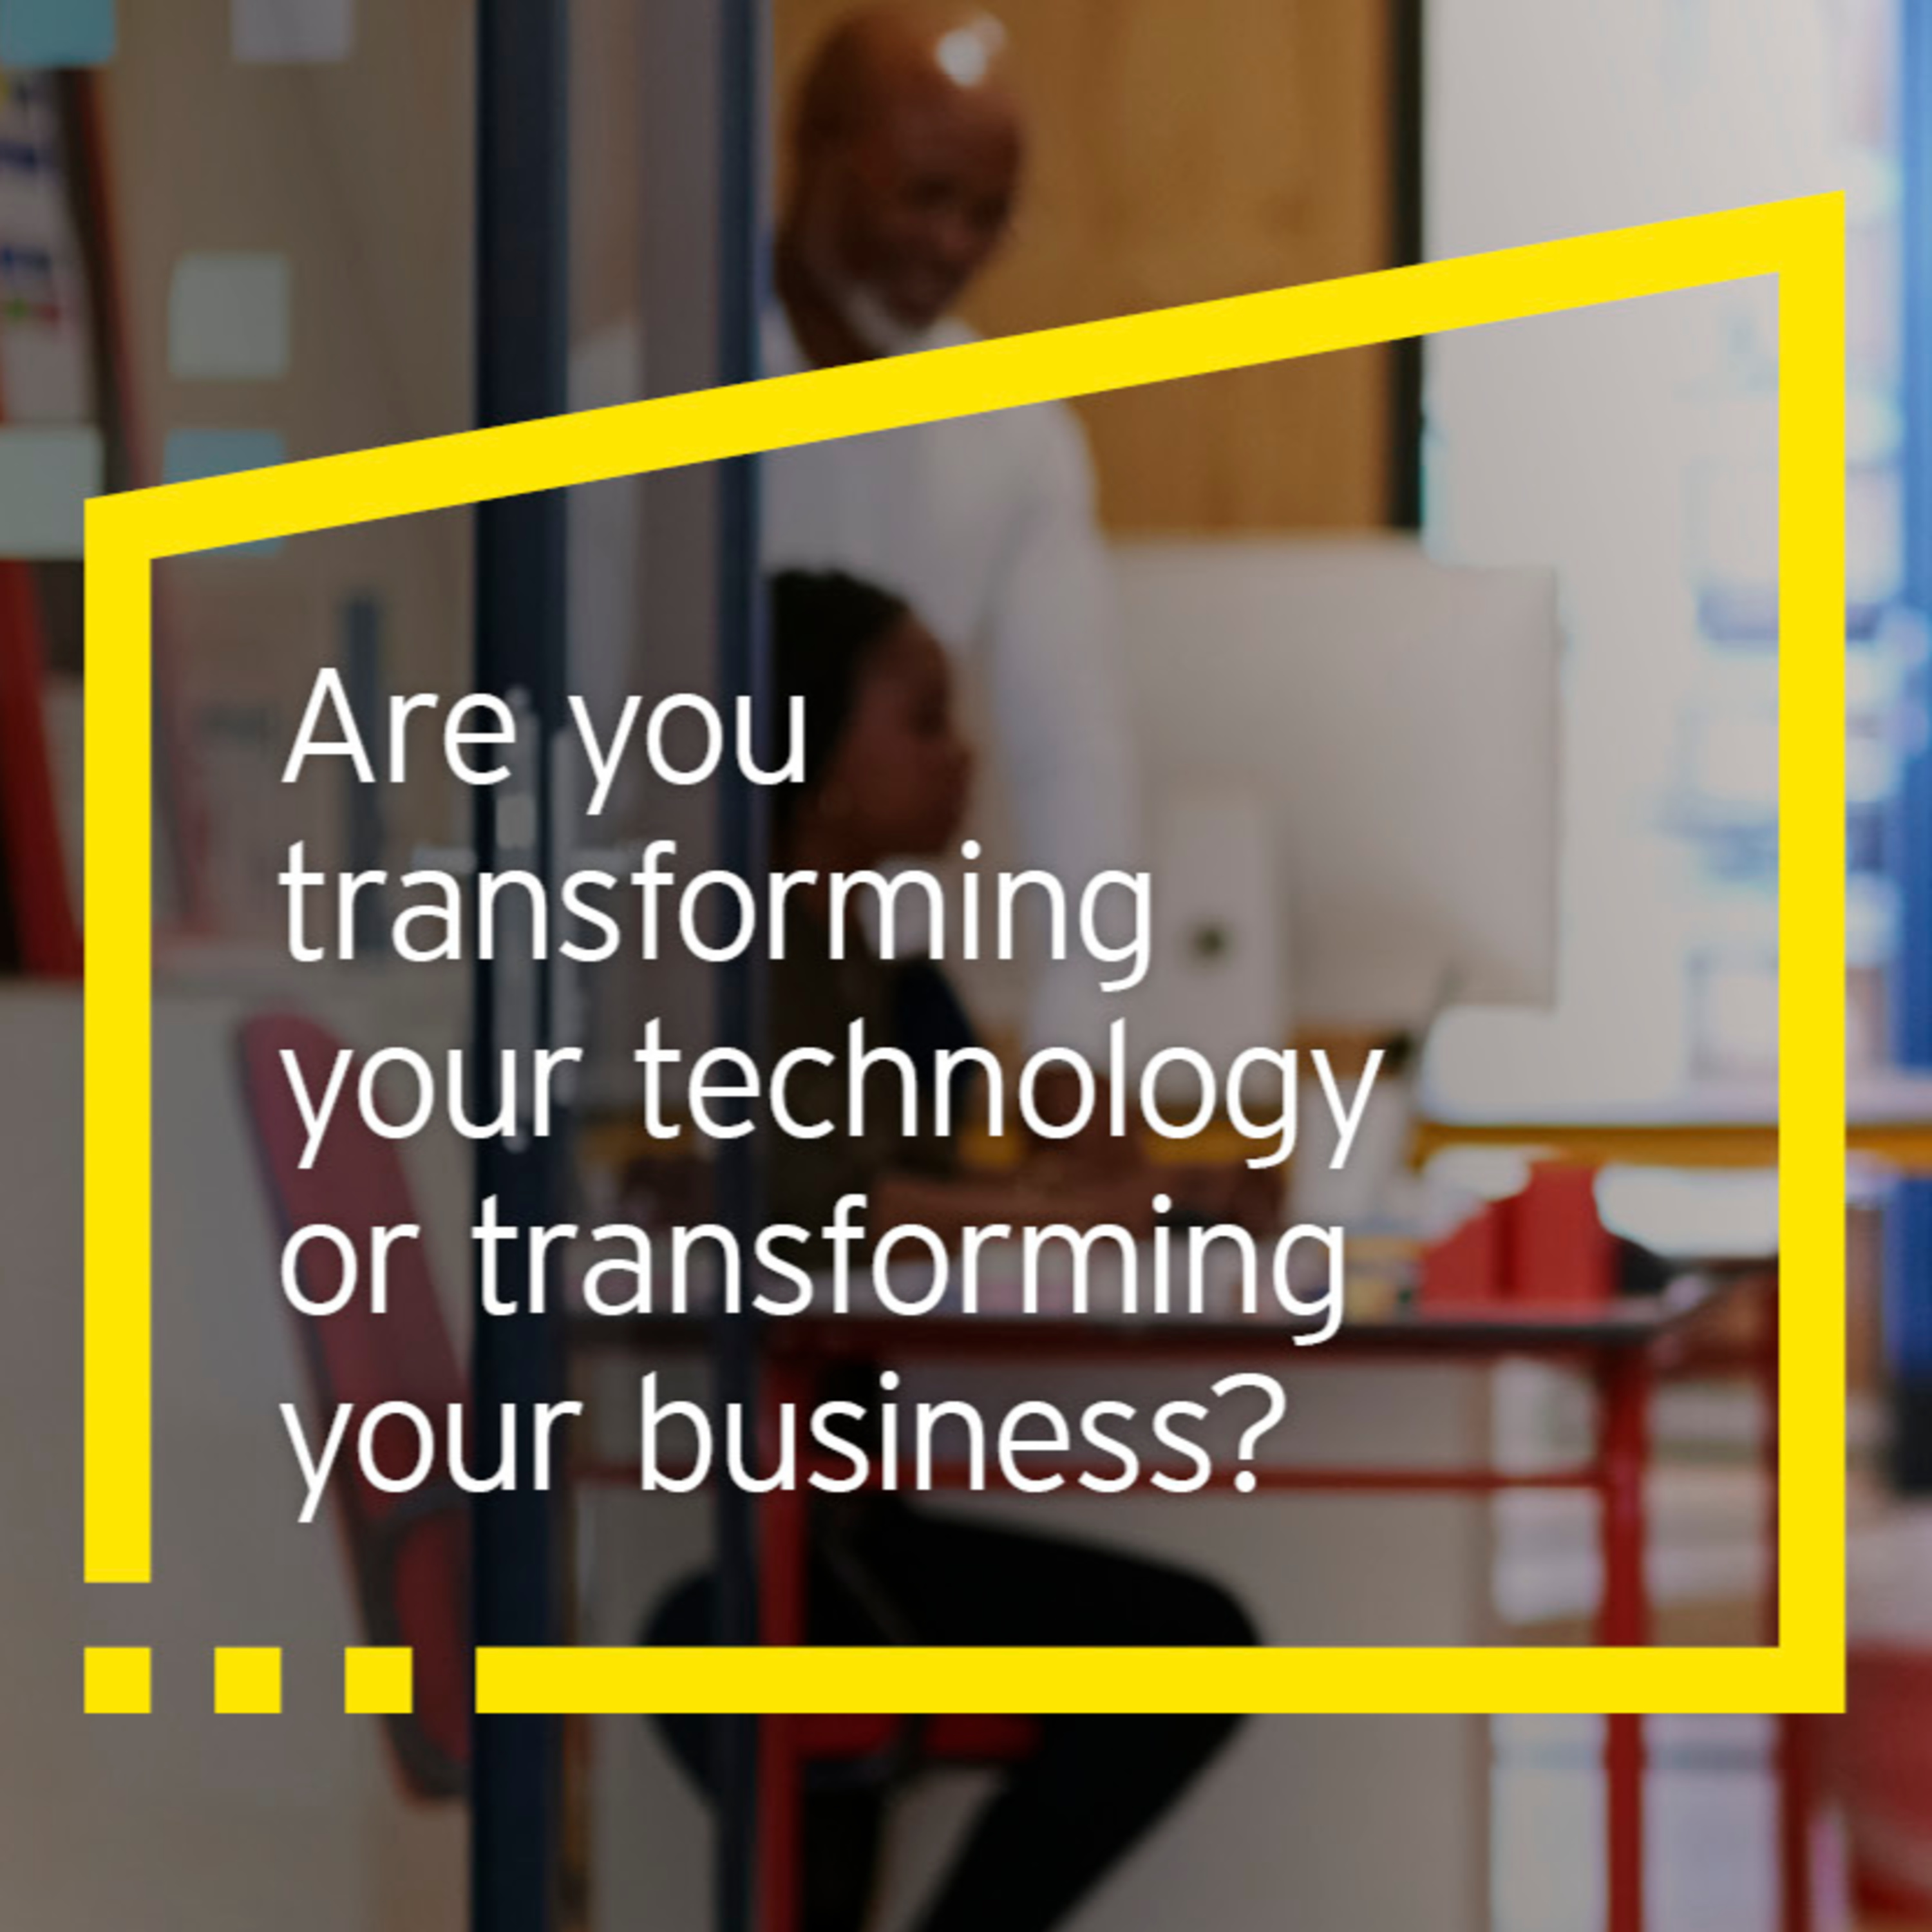 Are you transforming technology or transforming your business?